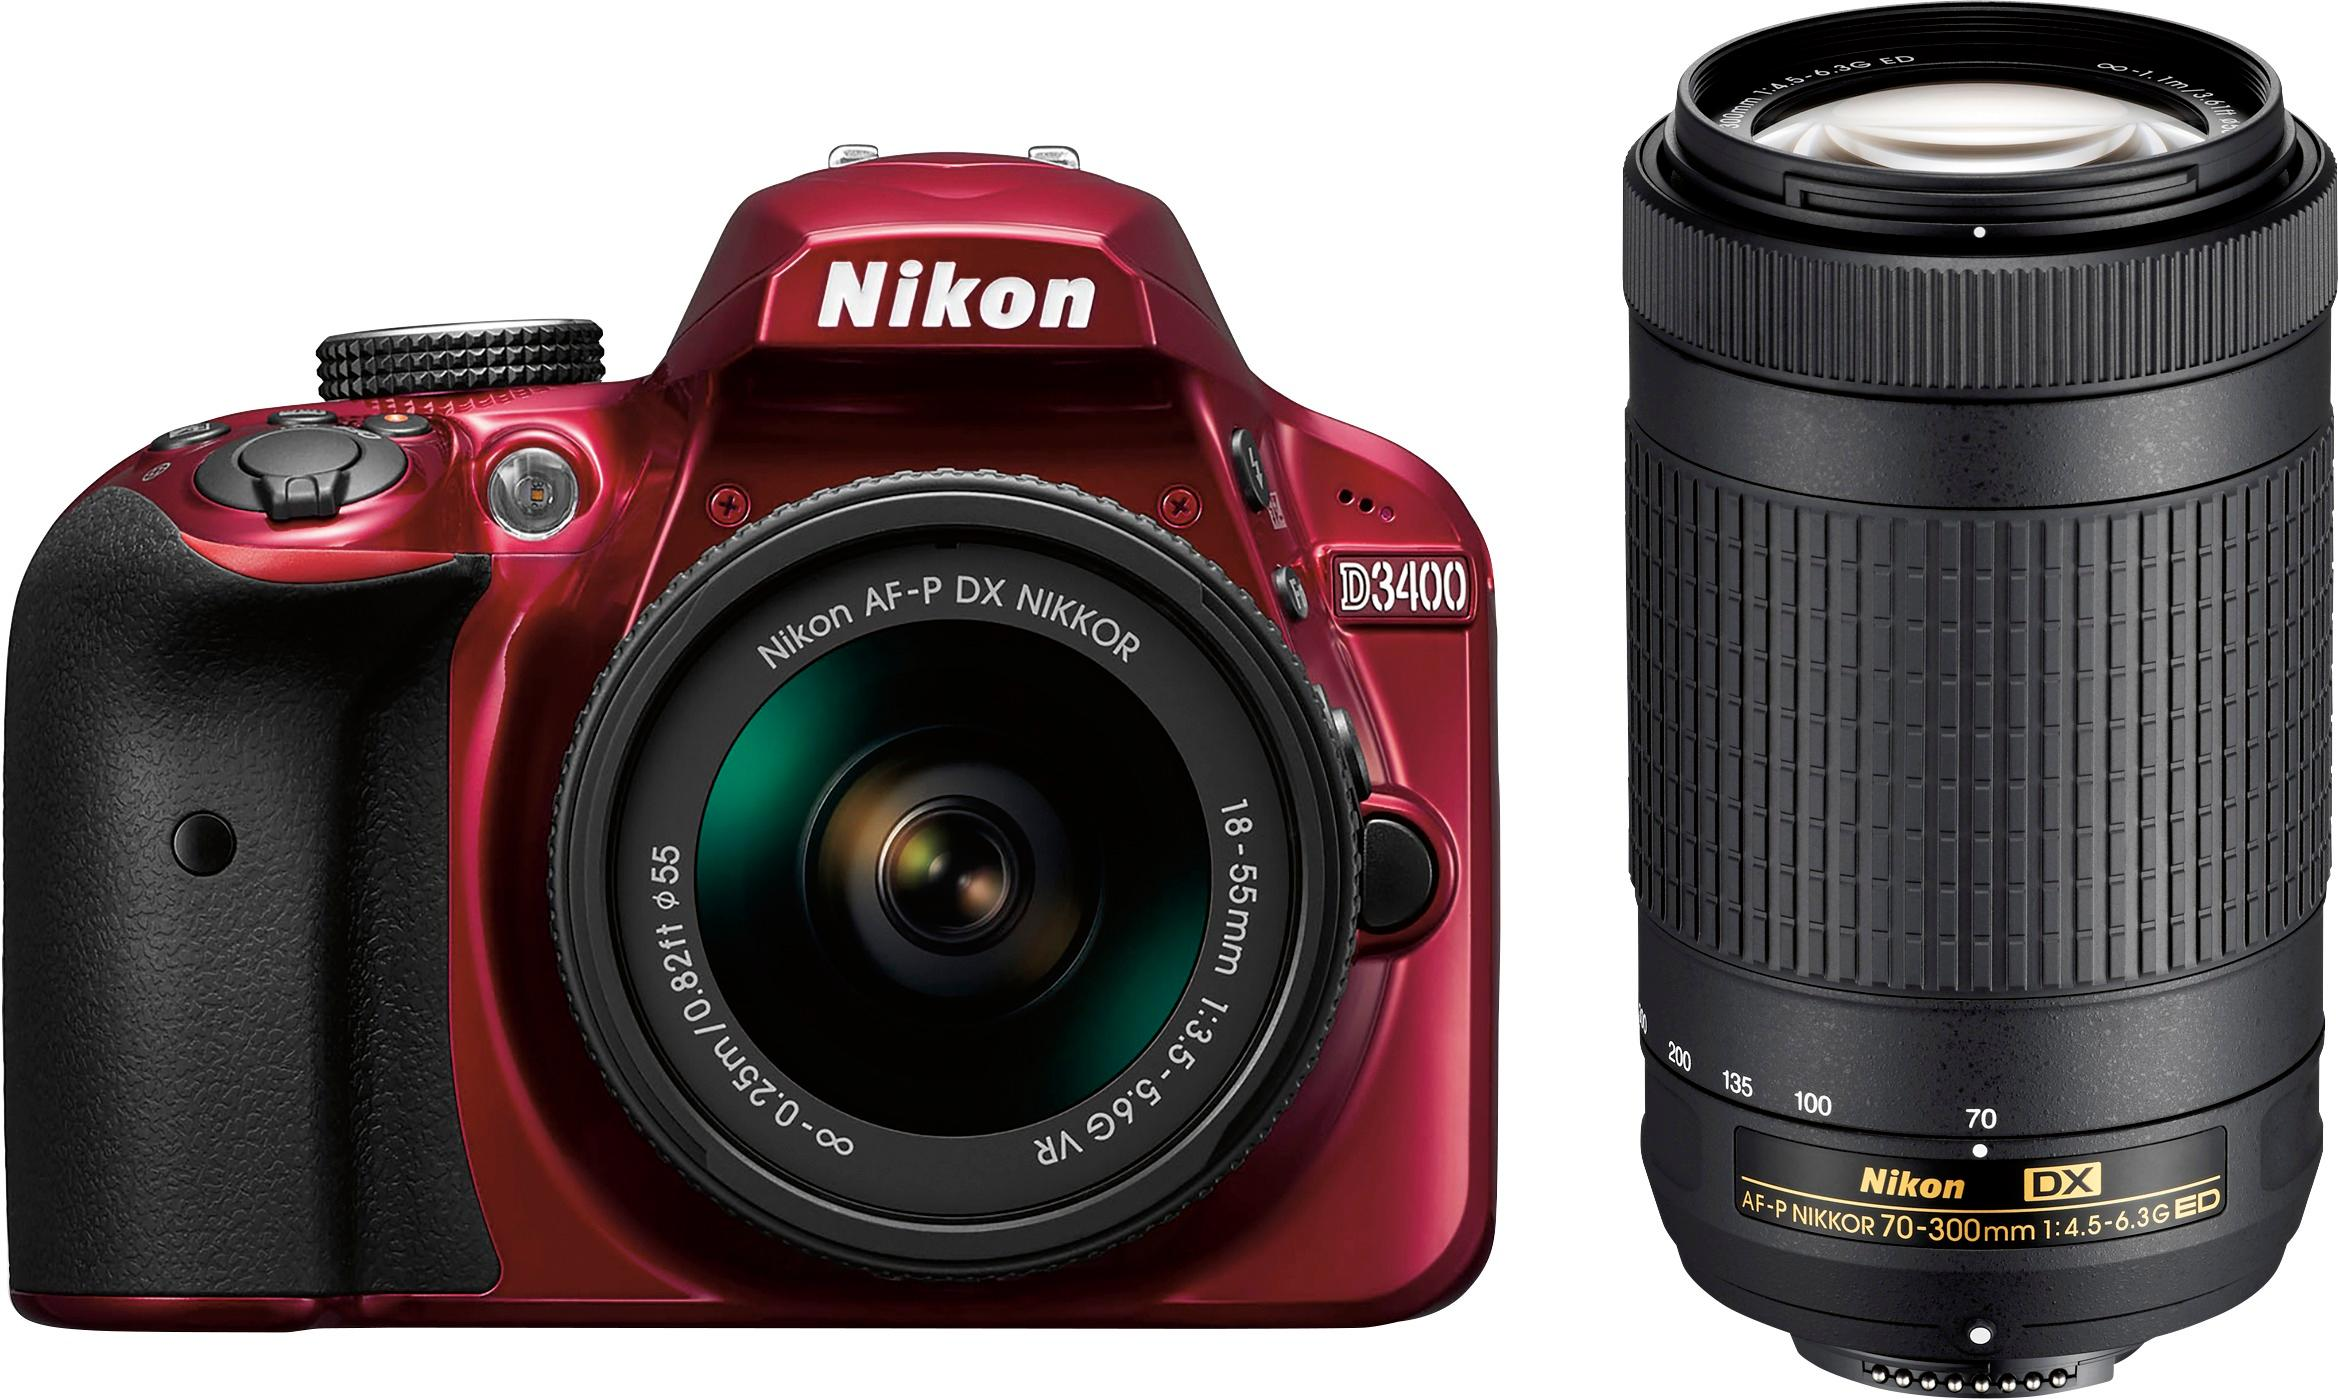 Nikon - D3400 DSLR Camera with AF-P DX 18-55mm G VR and 70-300mm ED ...